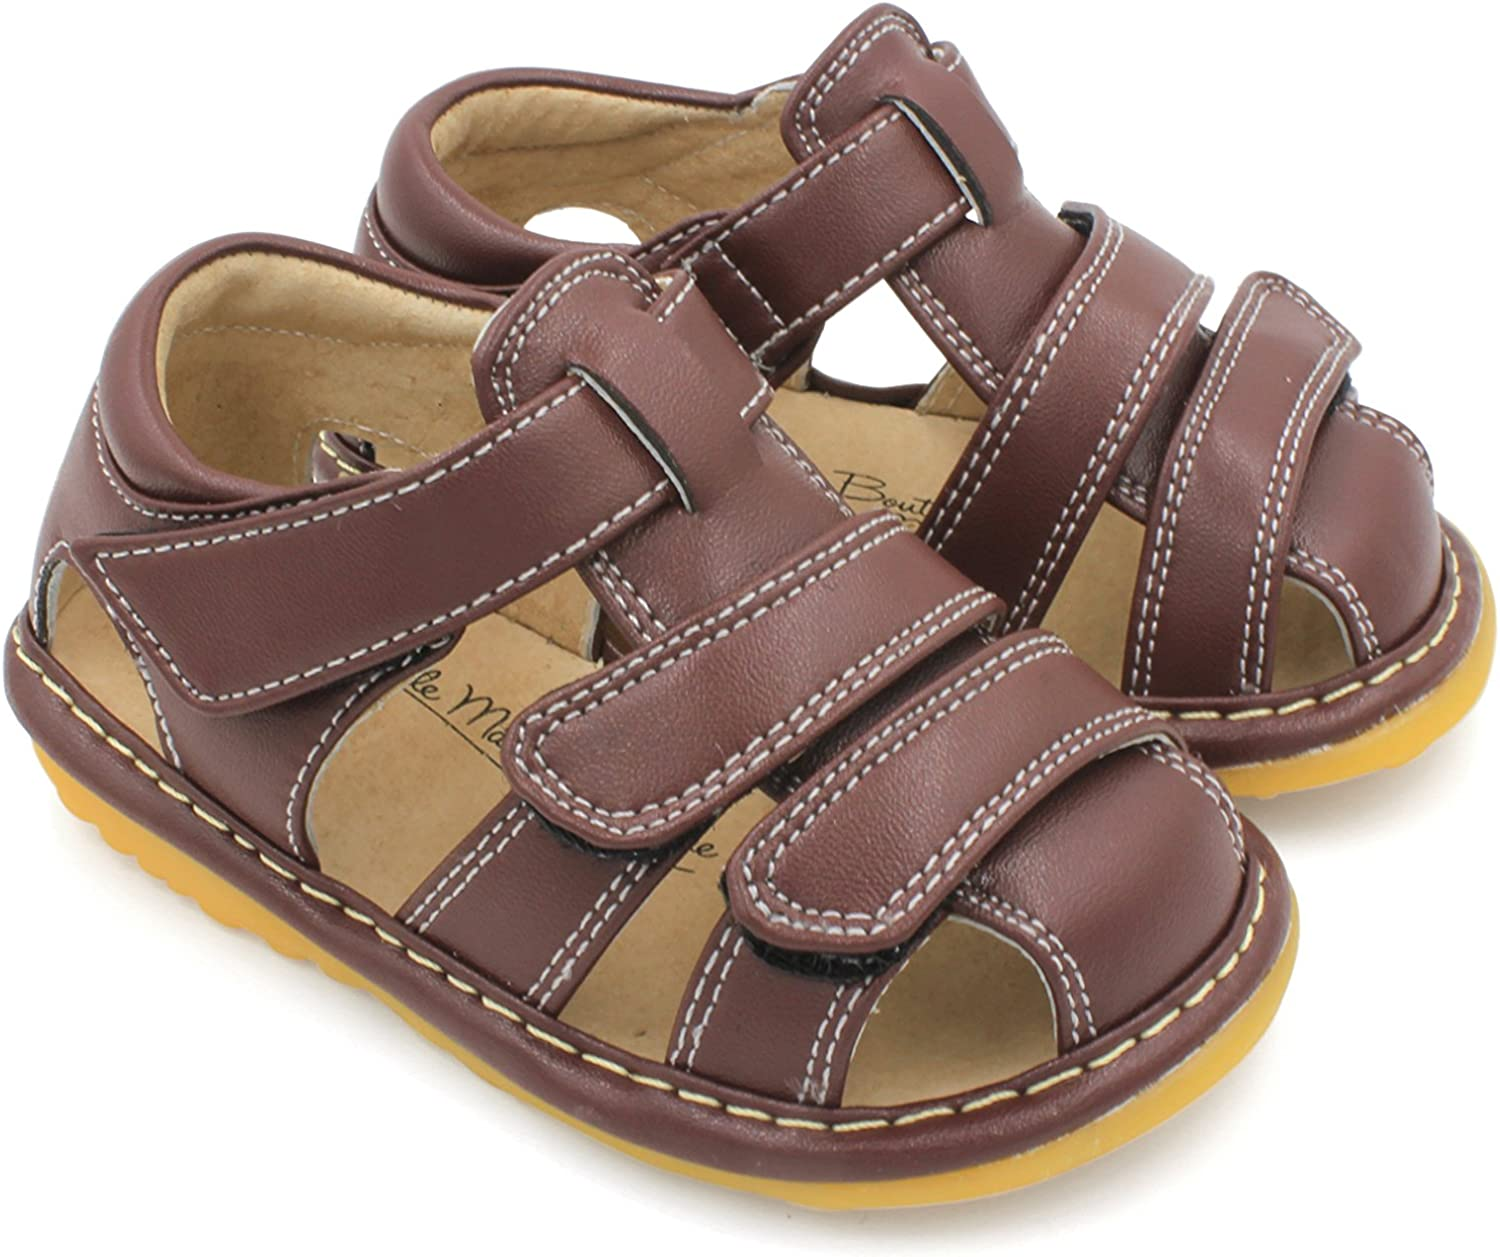 Brown Premium Quality Black or Navy Blue Closed Toe Adjustable Strap Squeaky Sandals Little MAE/'S Toddler Boy Sandals Removable Squeakers